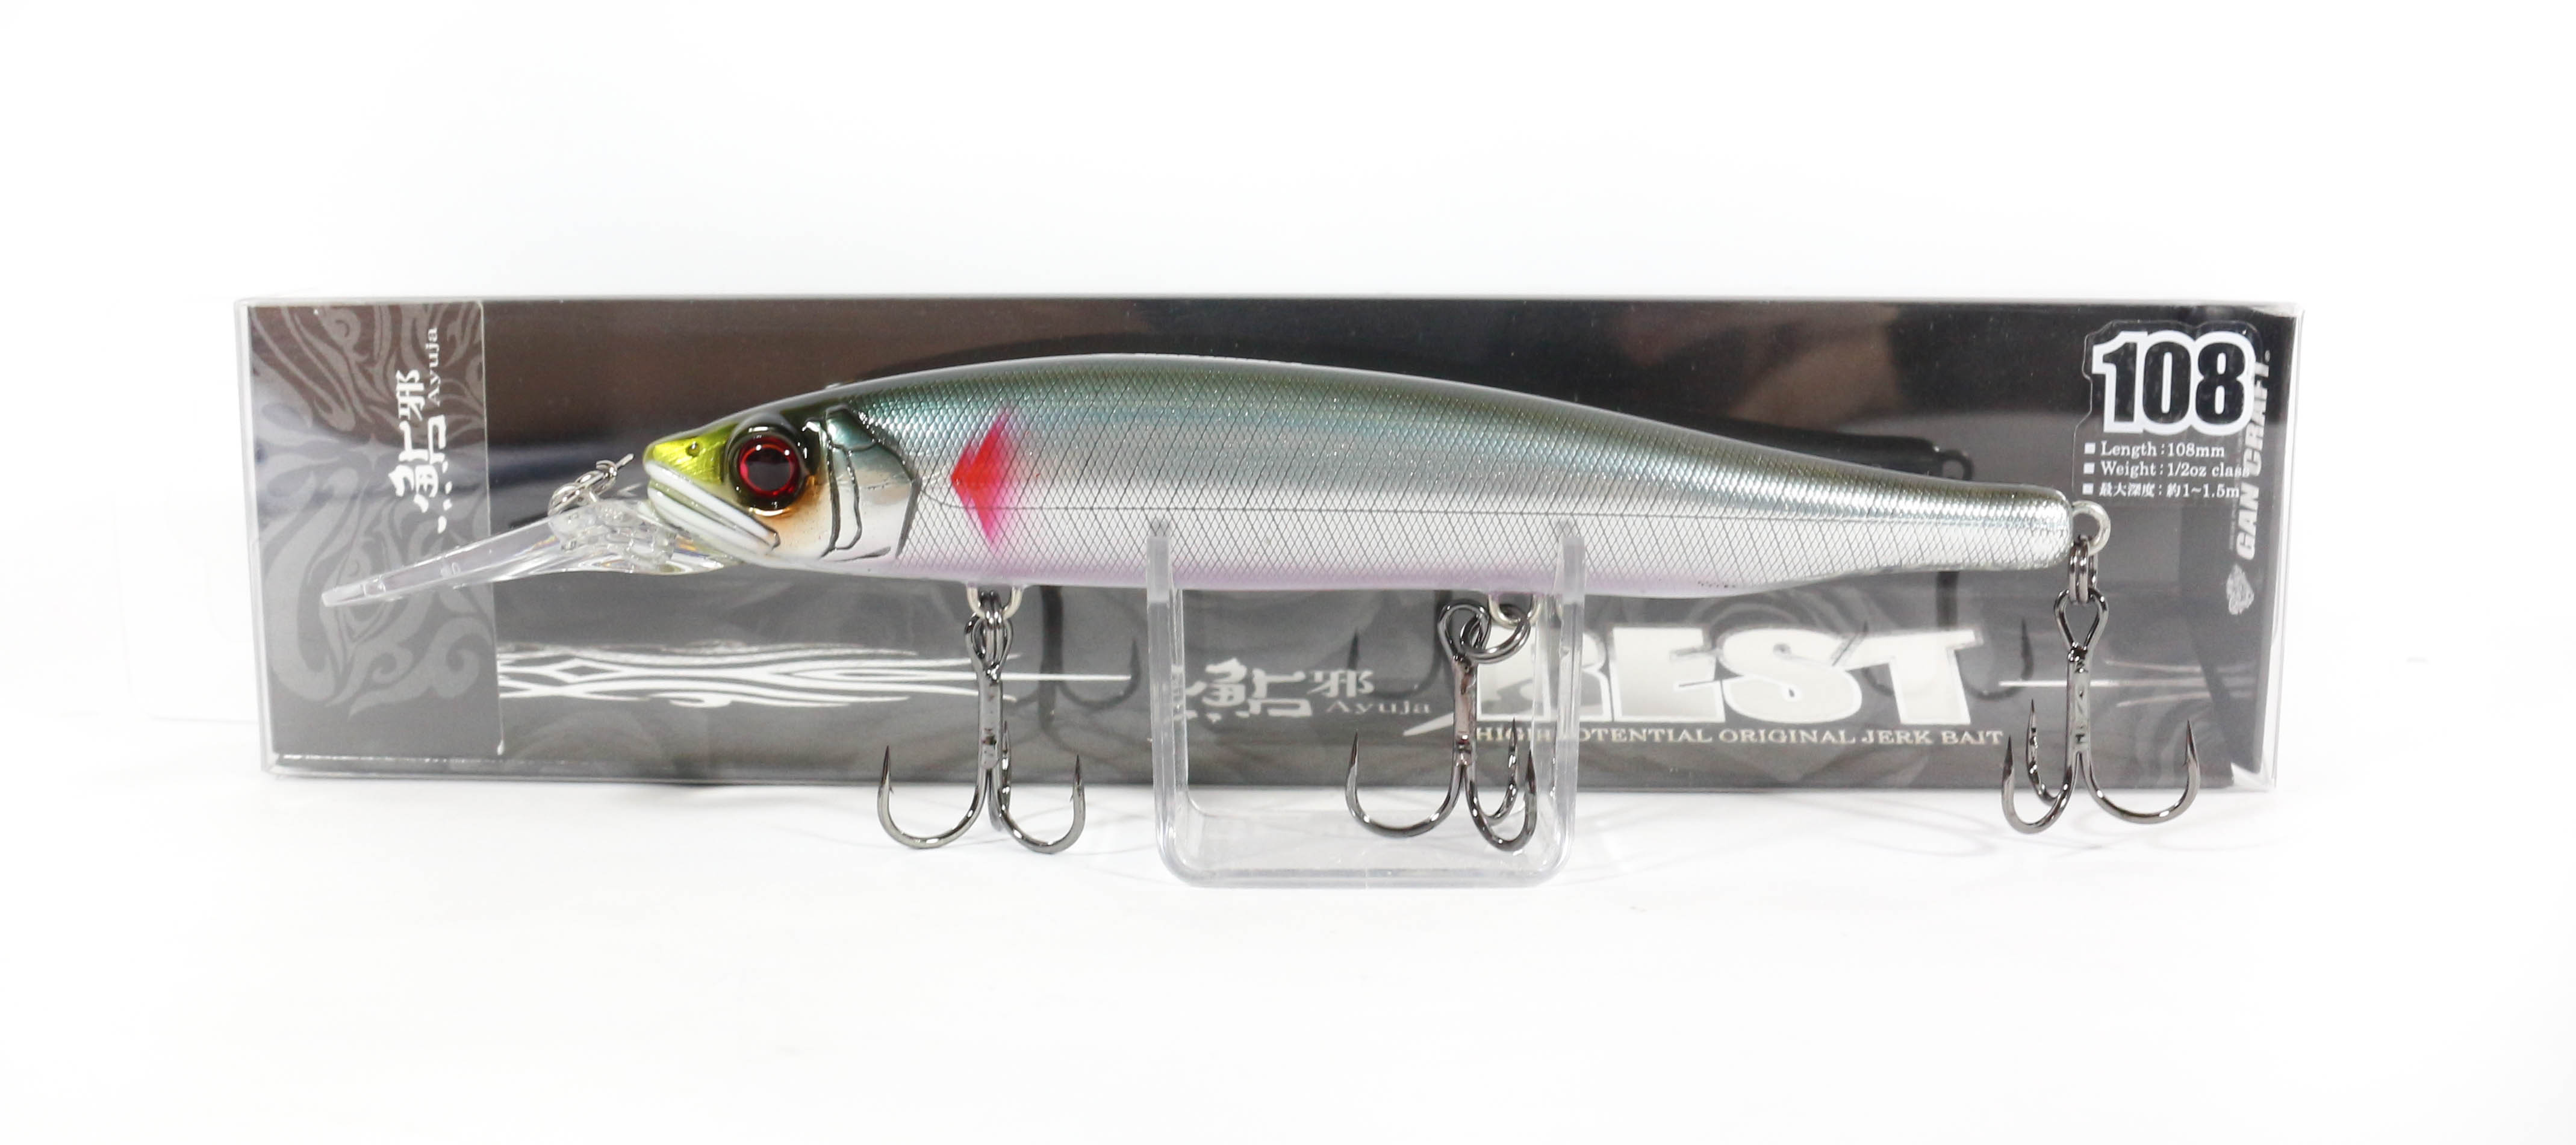 Gan Craft Ayuja Rest 108 Slow Floating Lure 02 (7940)